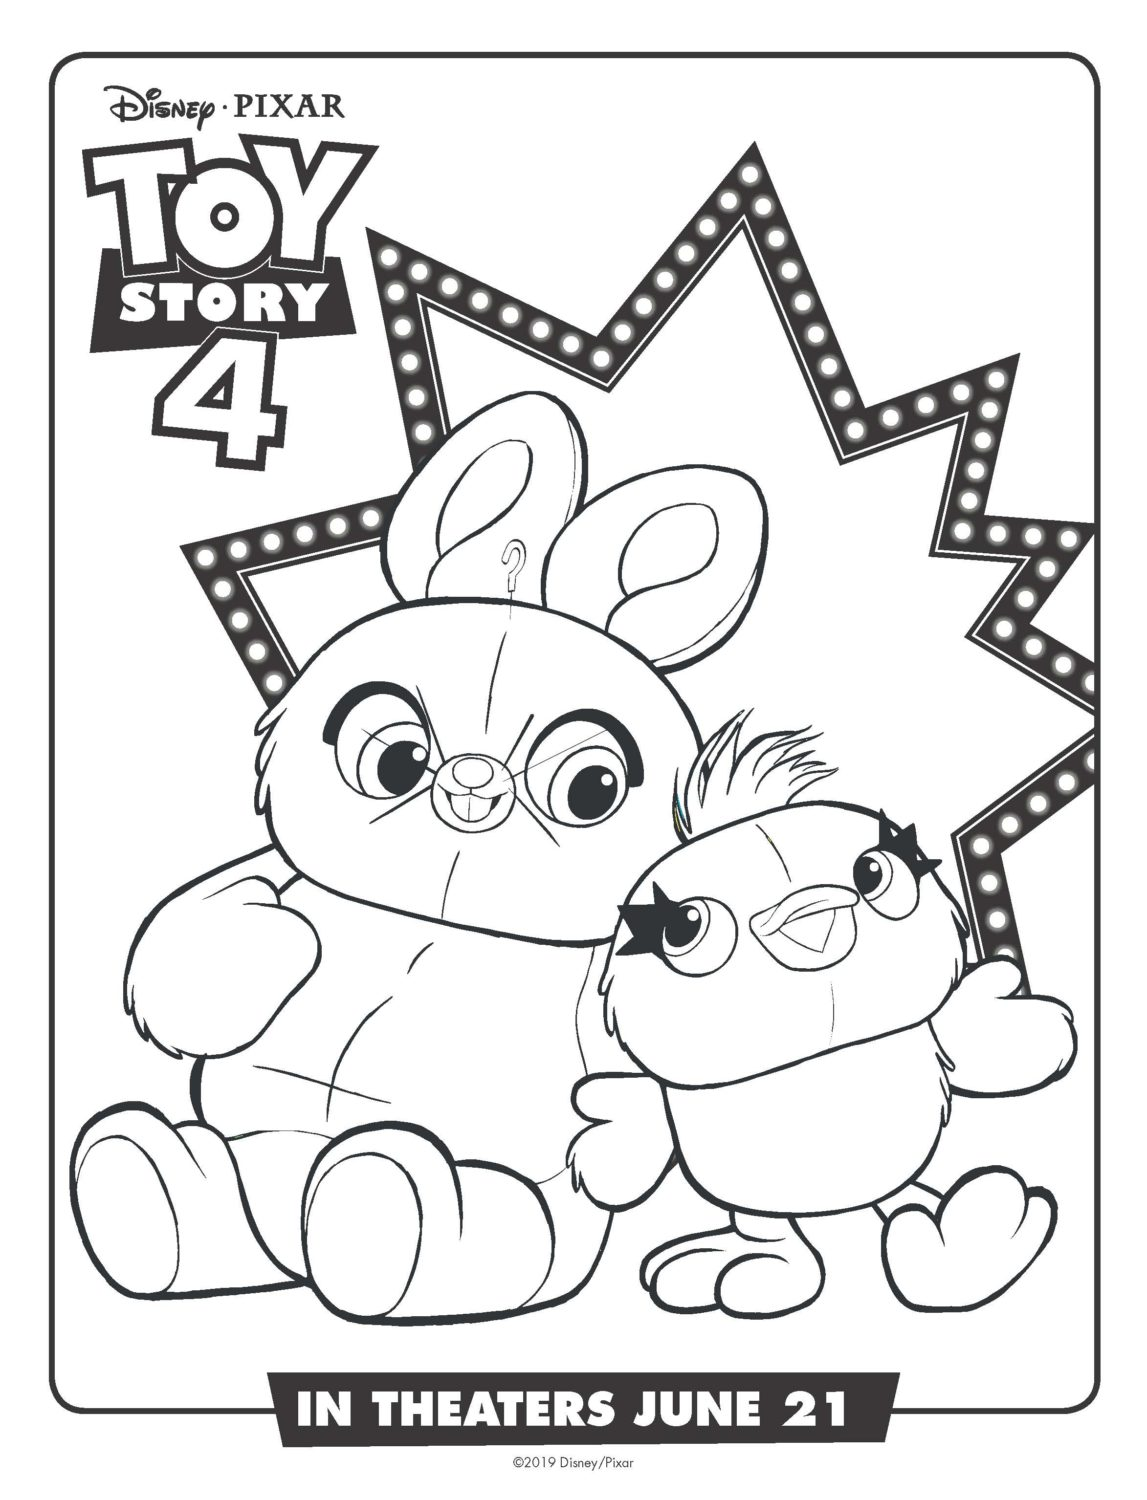 Toy Story 4 Ducky and Bunny Coloring Page and Activity Sheet